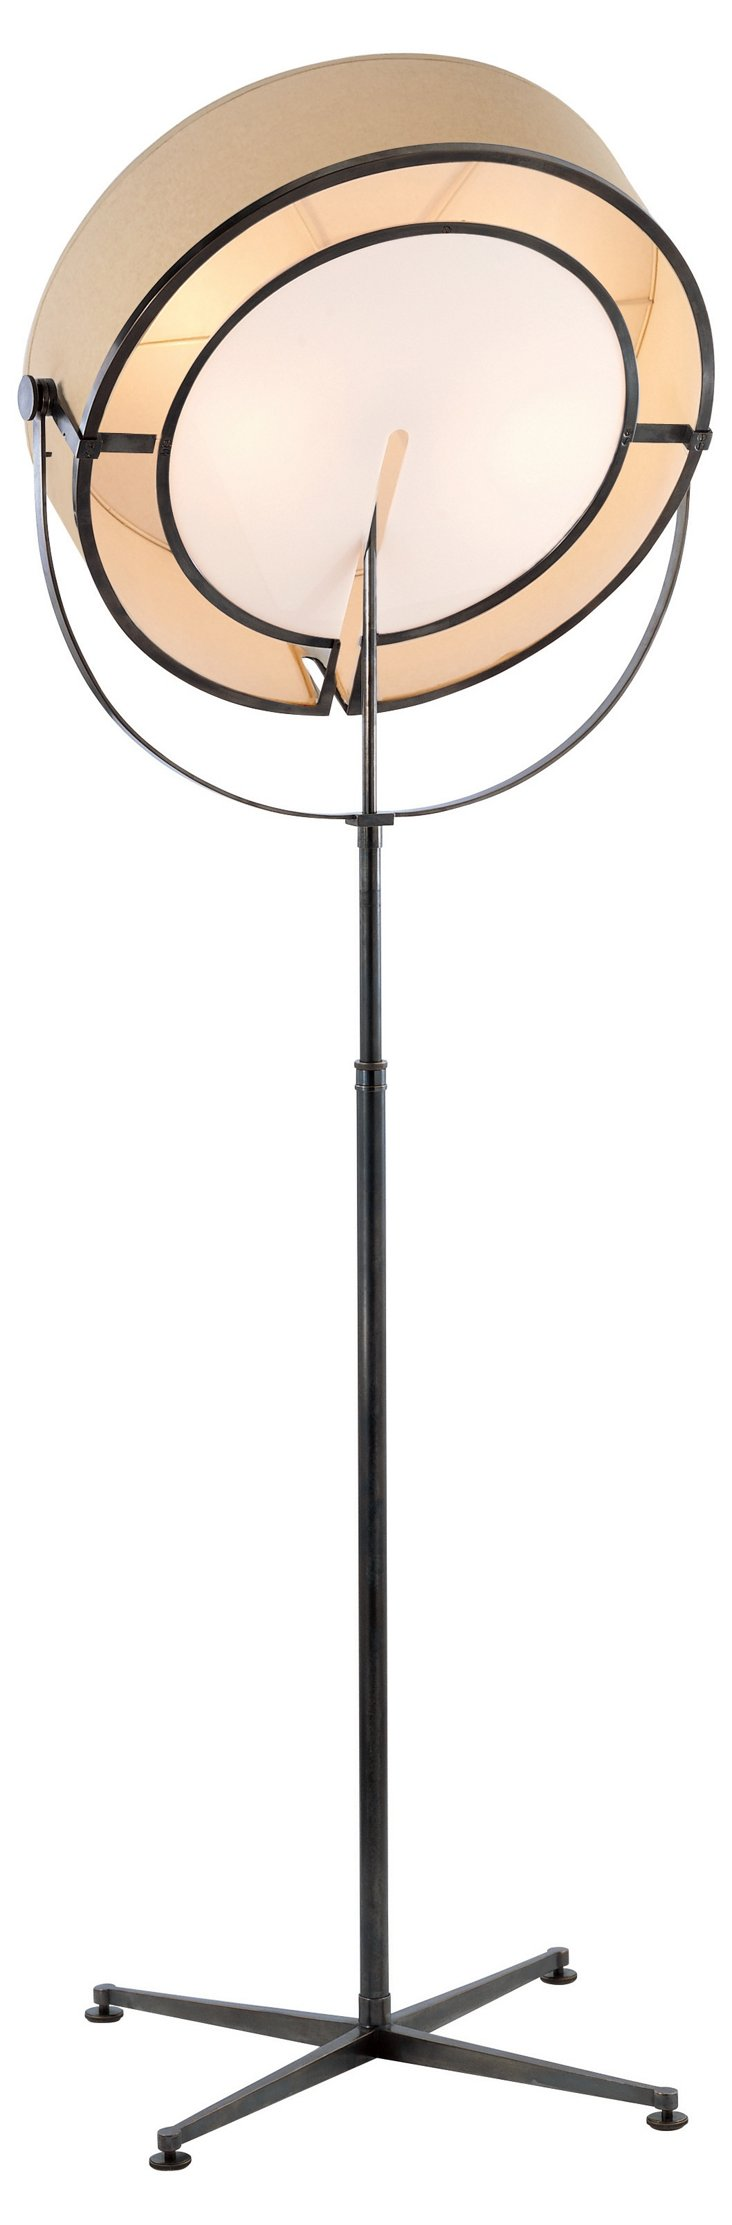 Stage Floor Lamp, Bronze